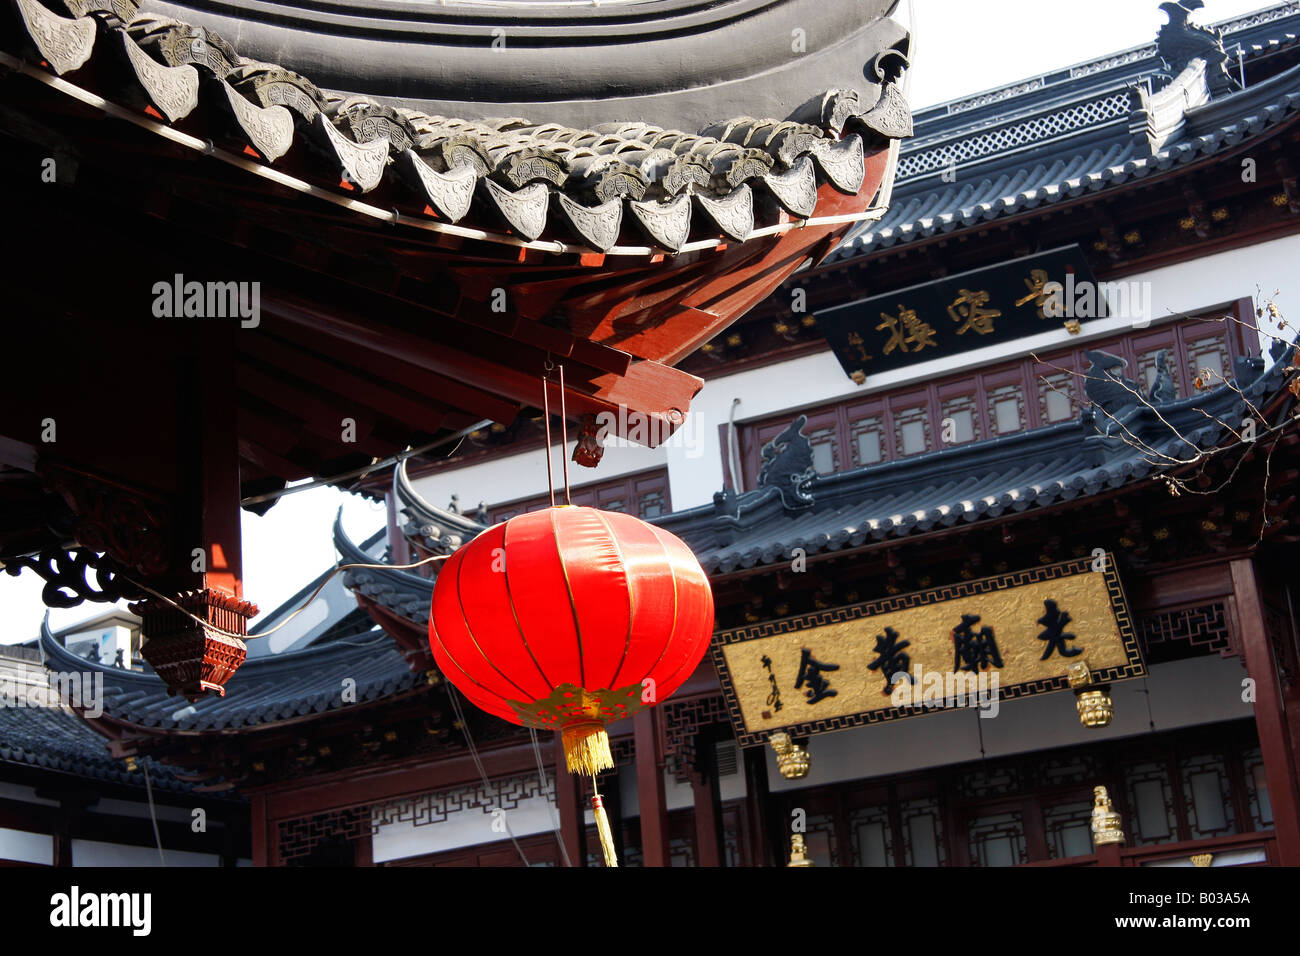 Roof tiles and lantern in the 'Old Town' Shanghai ,China - Stock Image